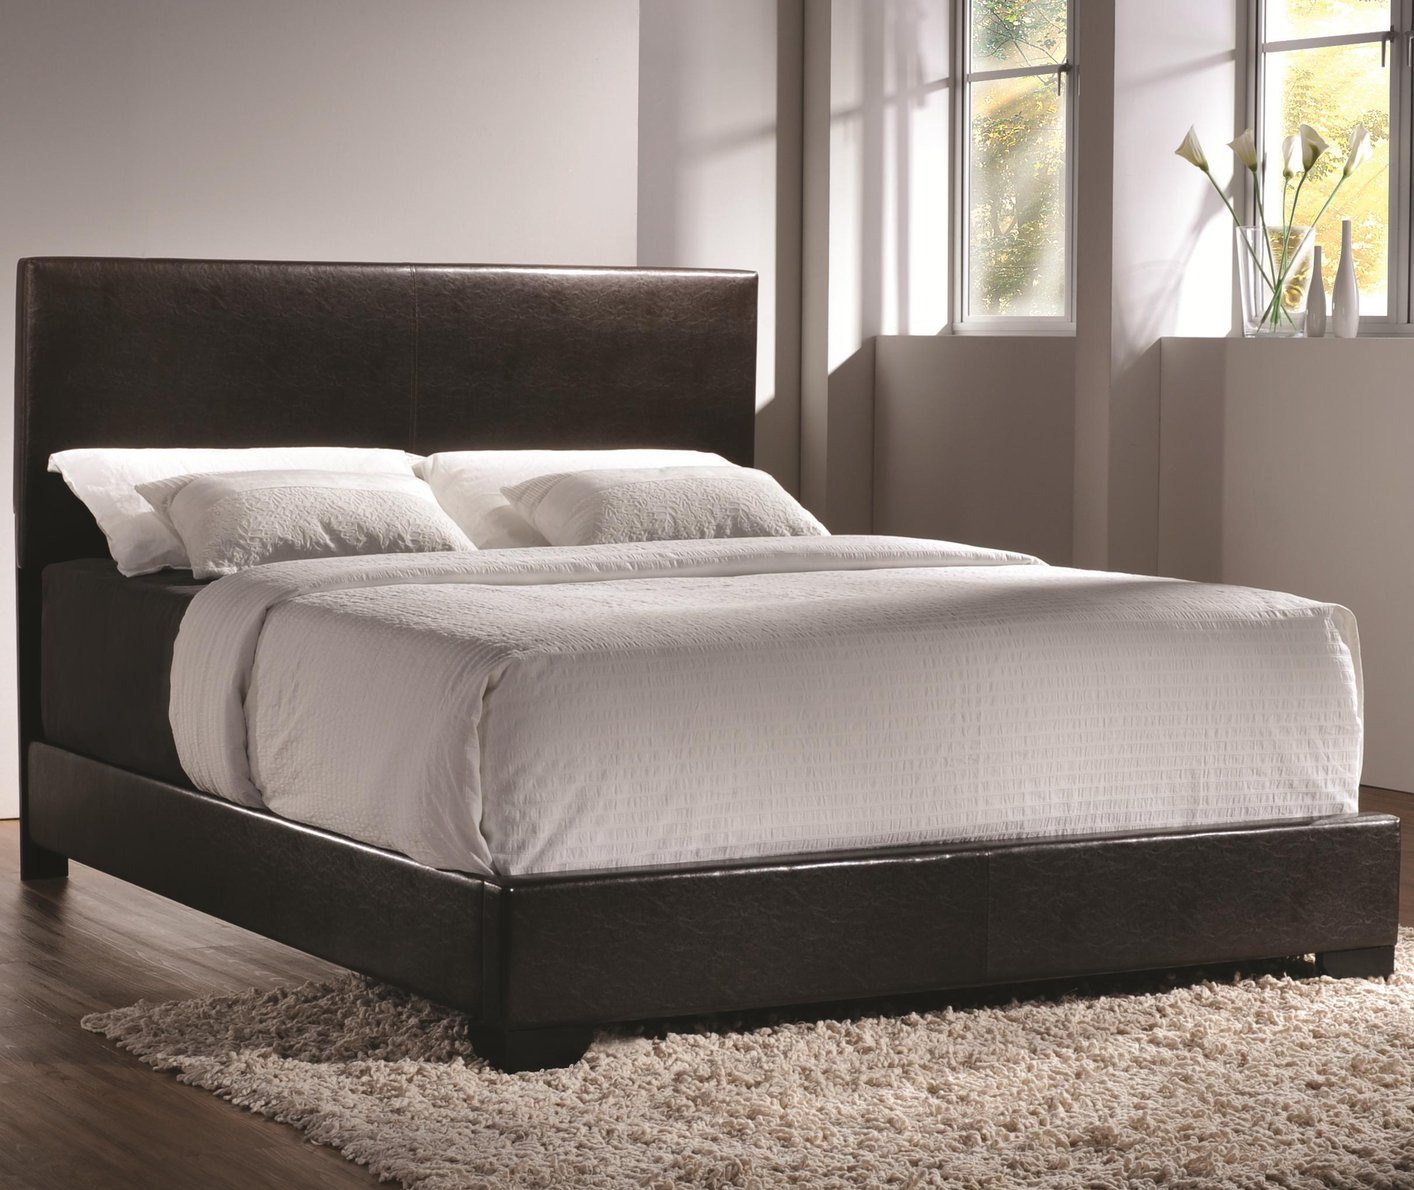 Bed Twin Size Titan Northeastfitness Co